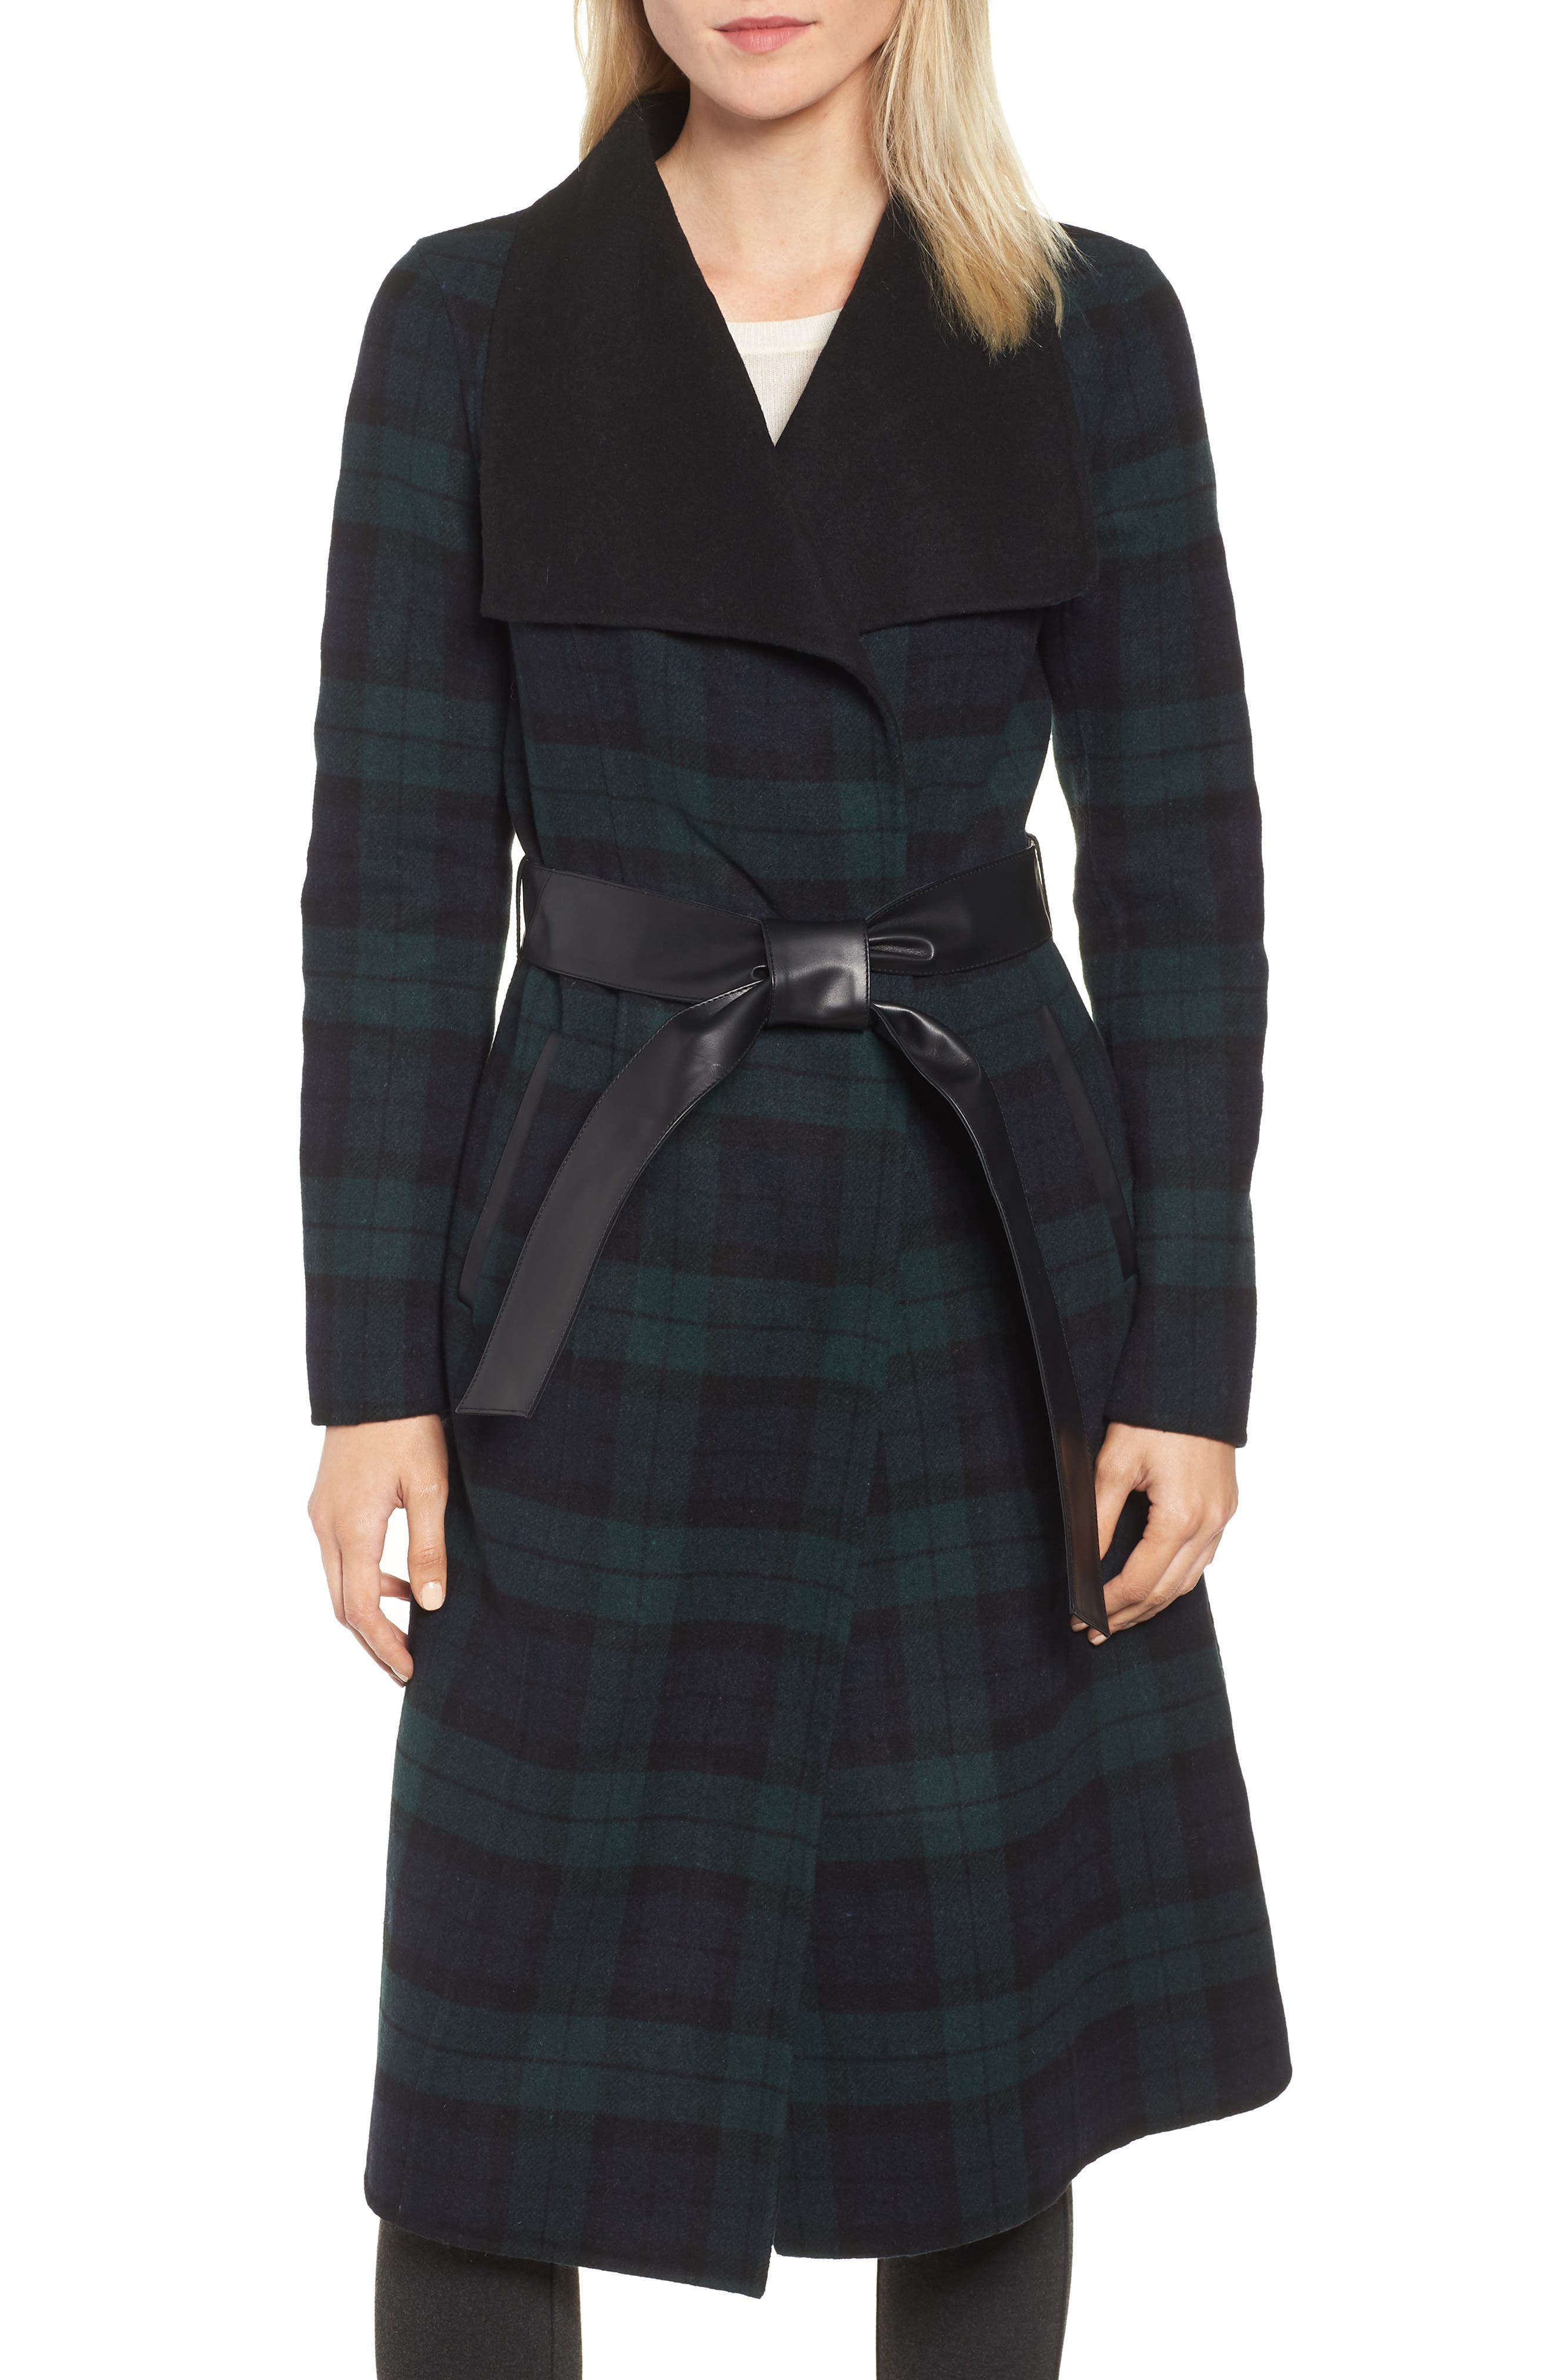 MACKAGE,                             Double Face Wool Leather Belted Coat,                             Main thumbnail 1, color,                             411